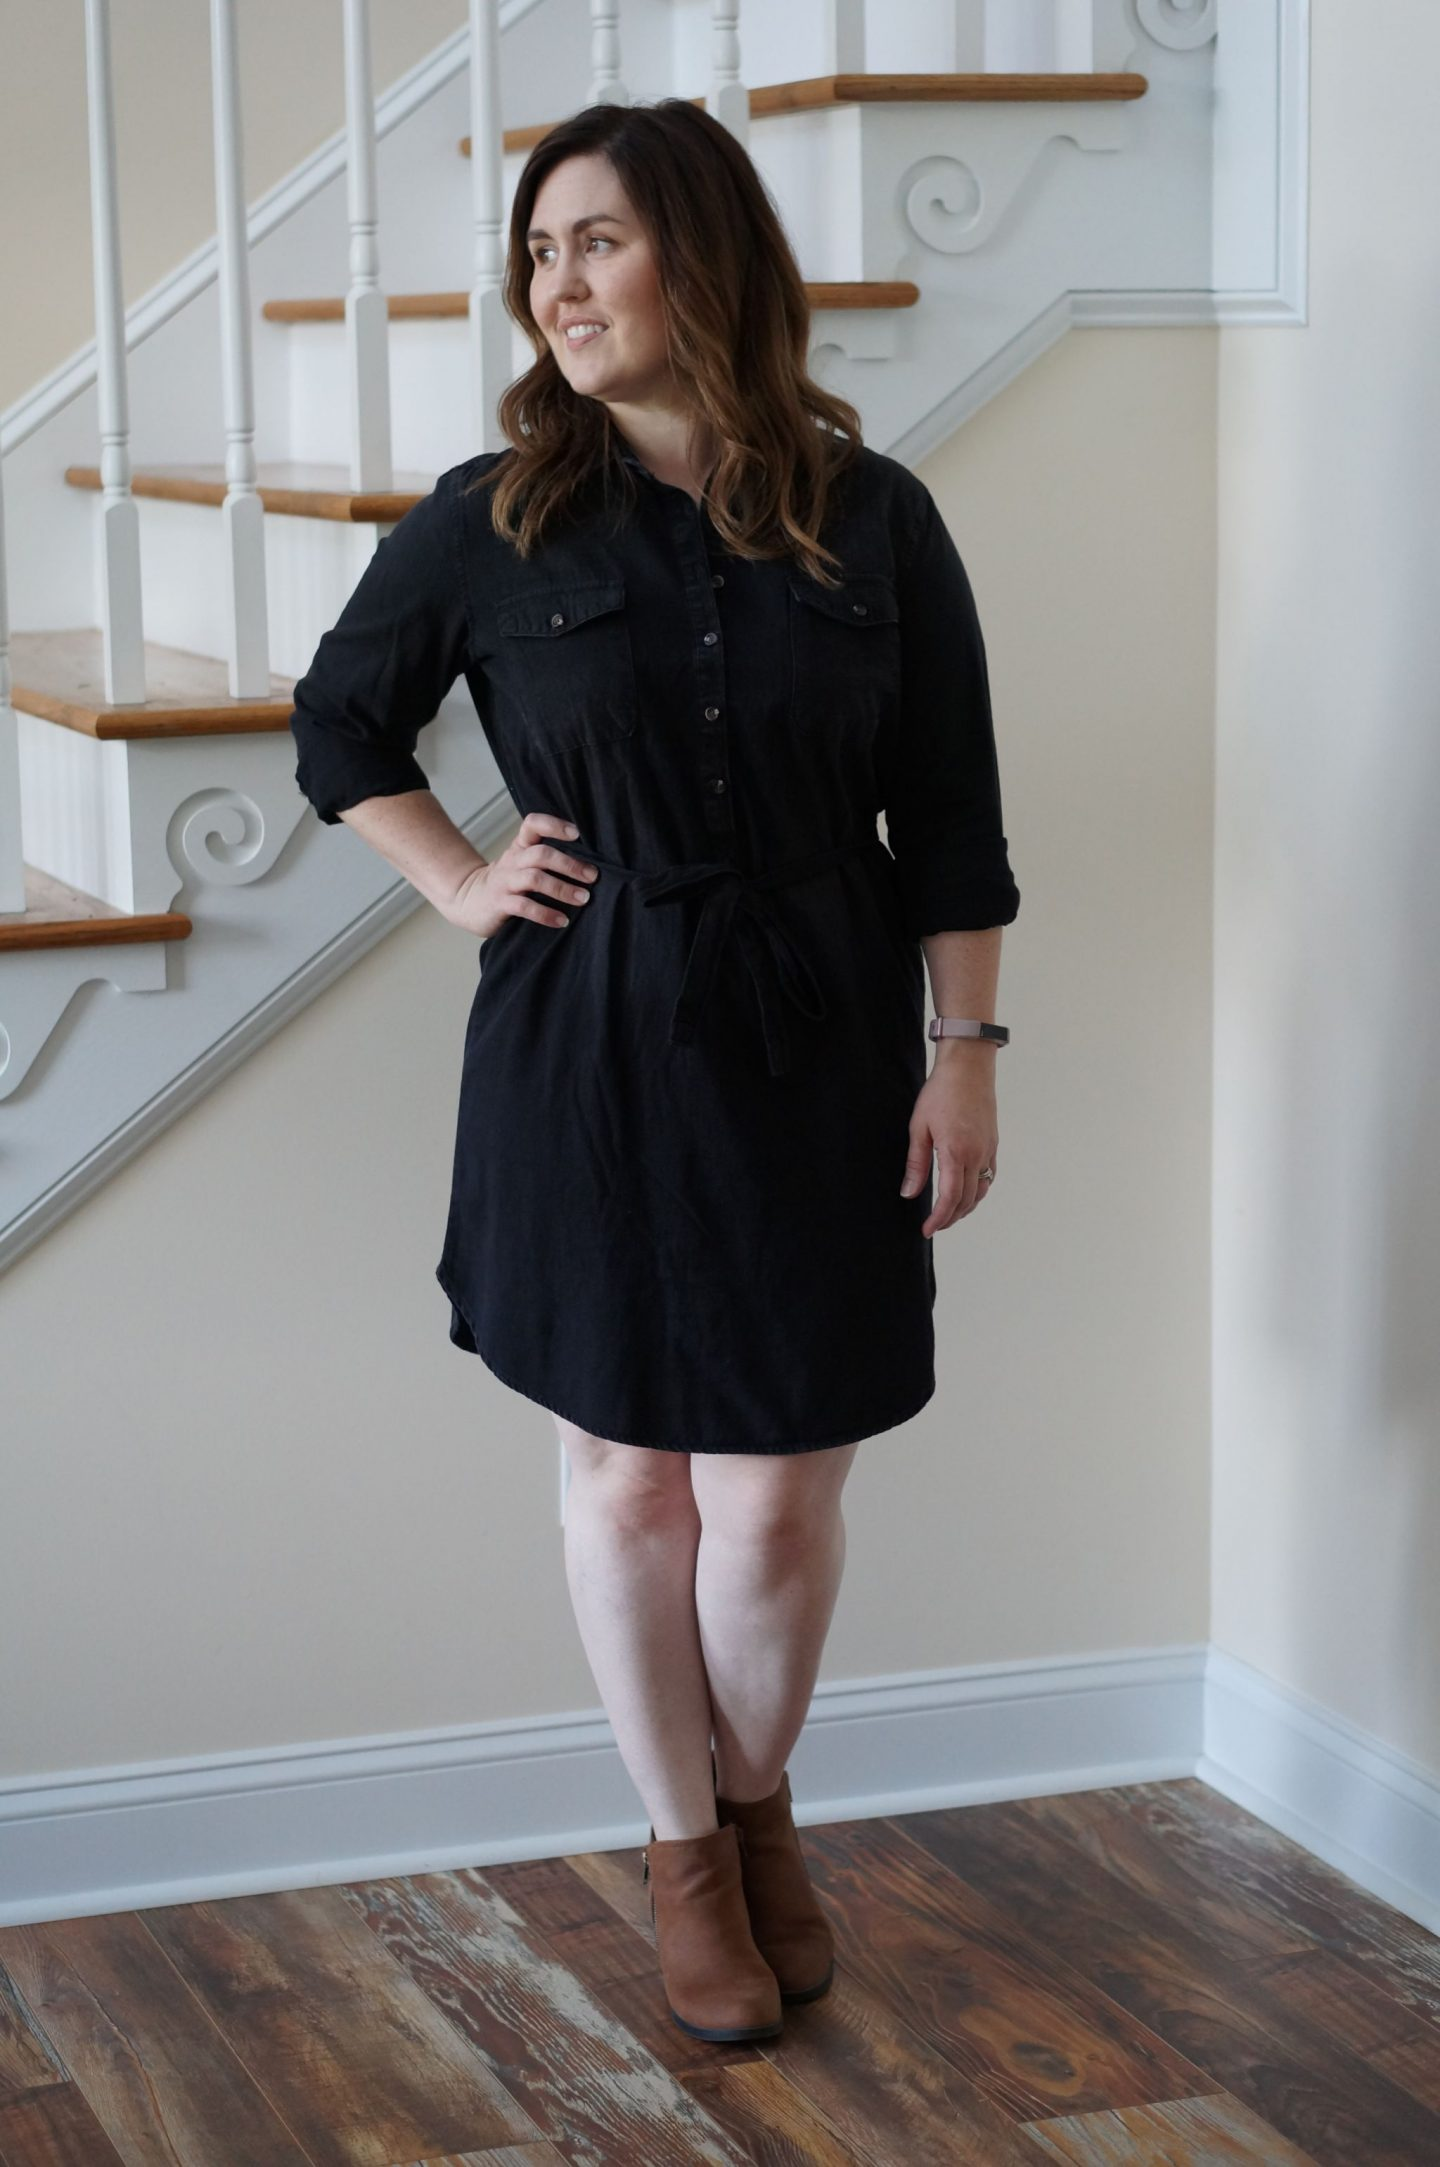 Popular North Carolina style blogger Rebecca Lately shares one of her favorite transitional fall outfits, featuring a black denim dress. Click to read more.